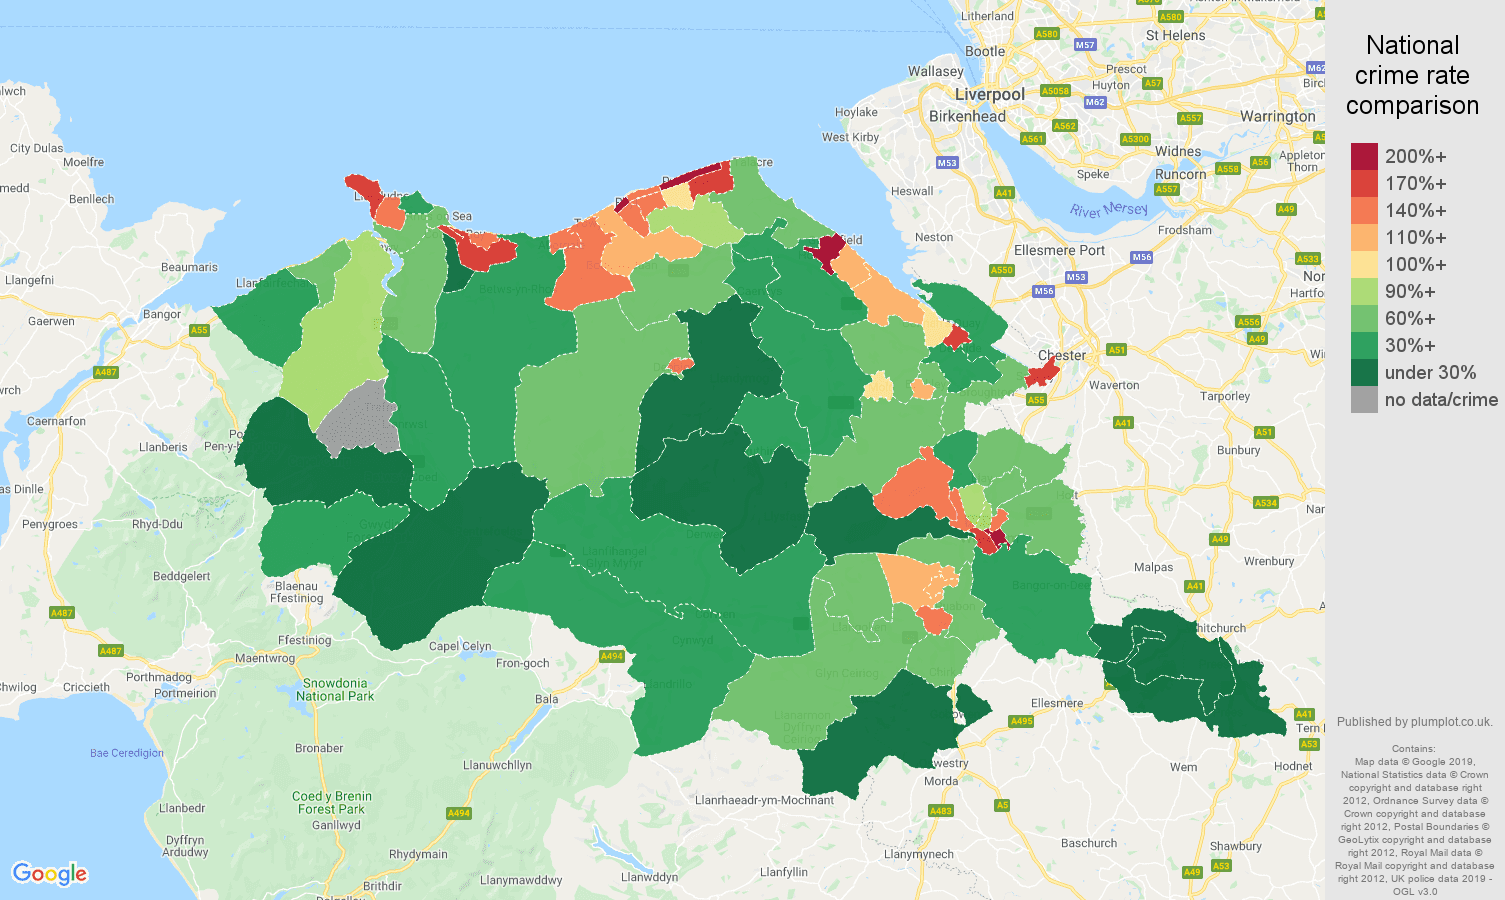 Clwyd public order crime rate comparison map